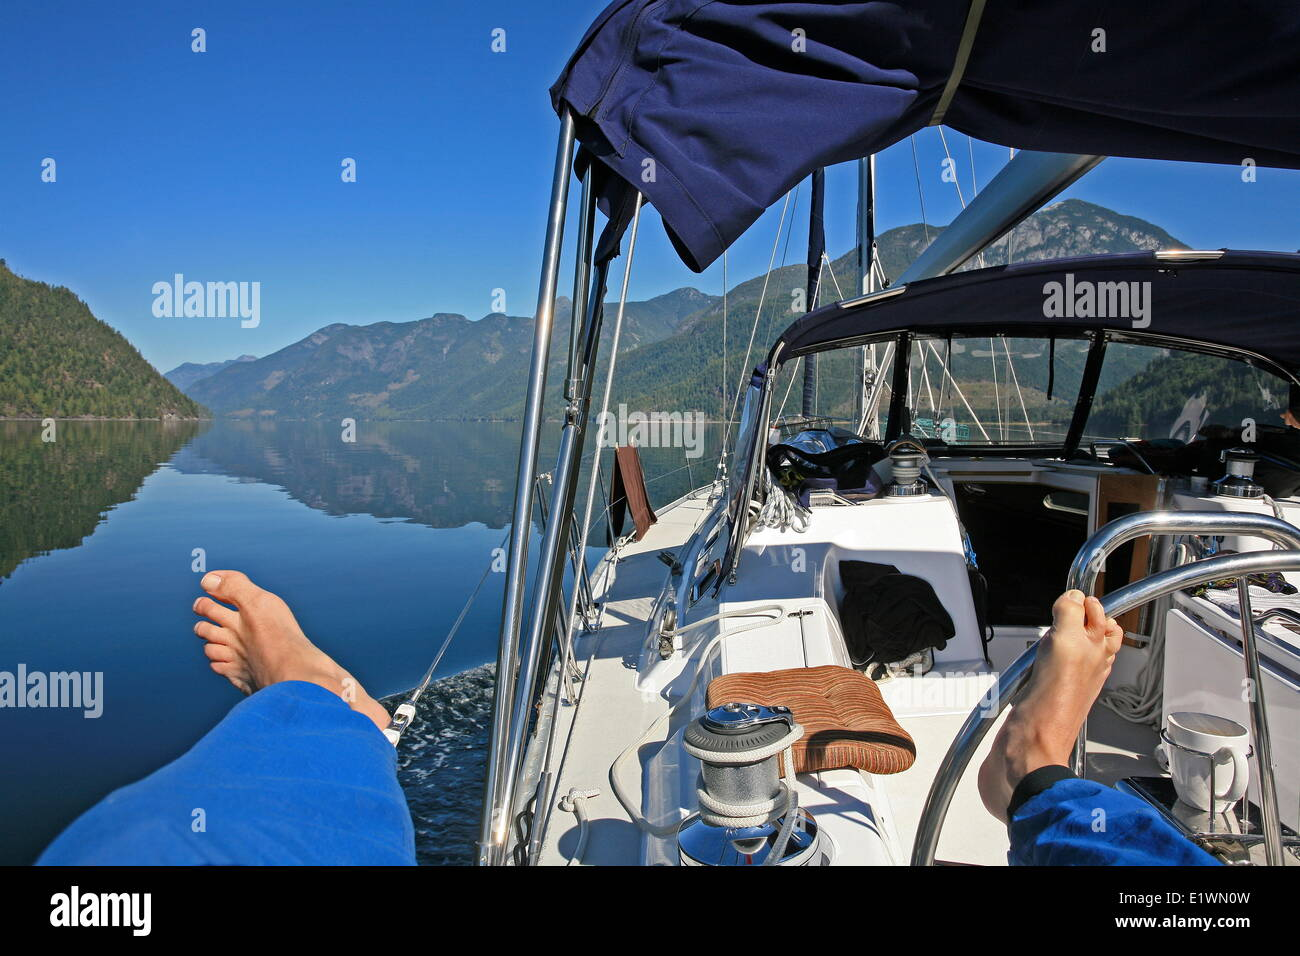 motoring through Desolation Sound, British Columbia, with feet on steering wheel and relaxing, Darrel Giesbrecht - Stock Image